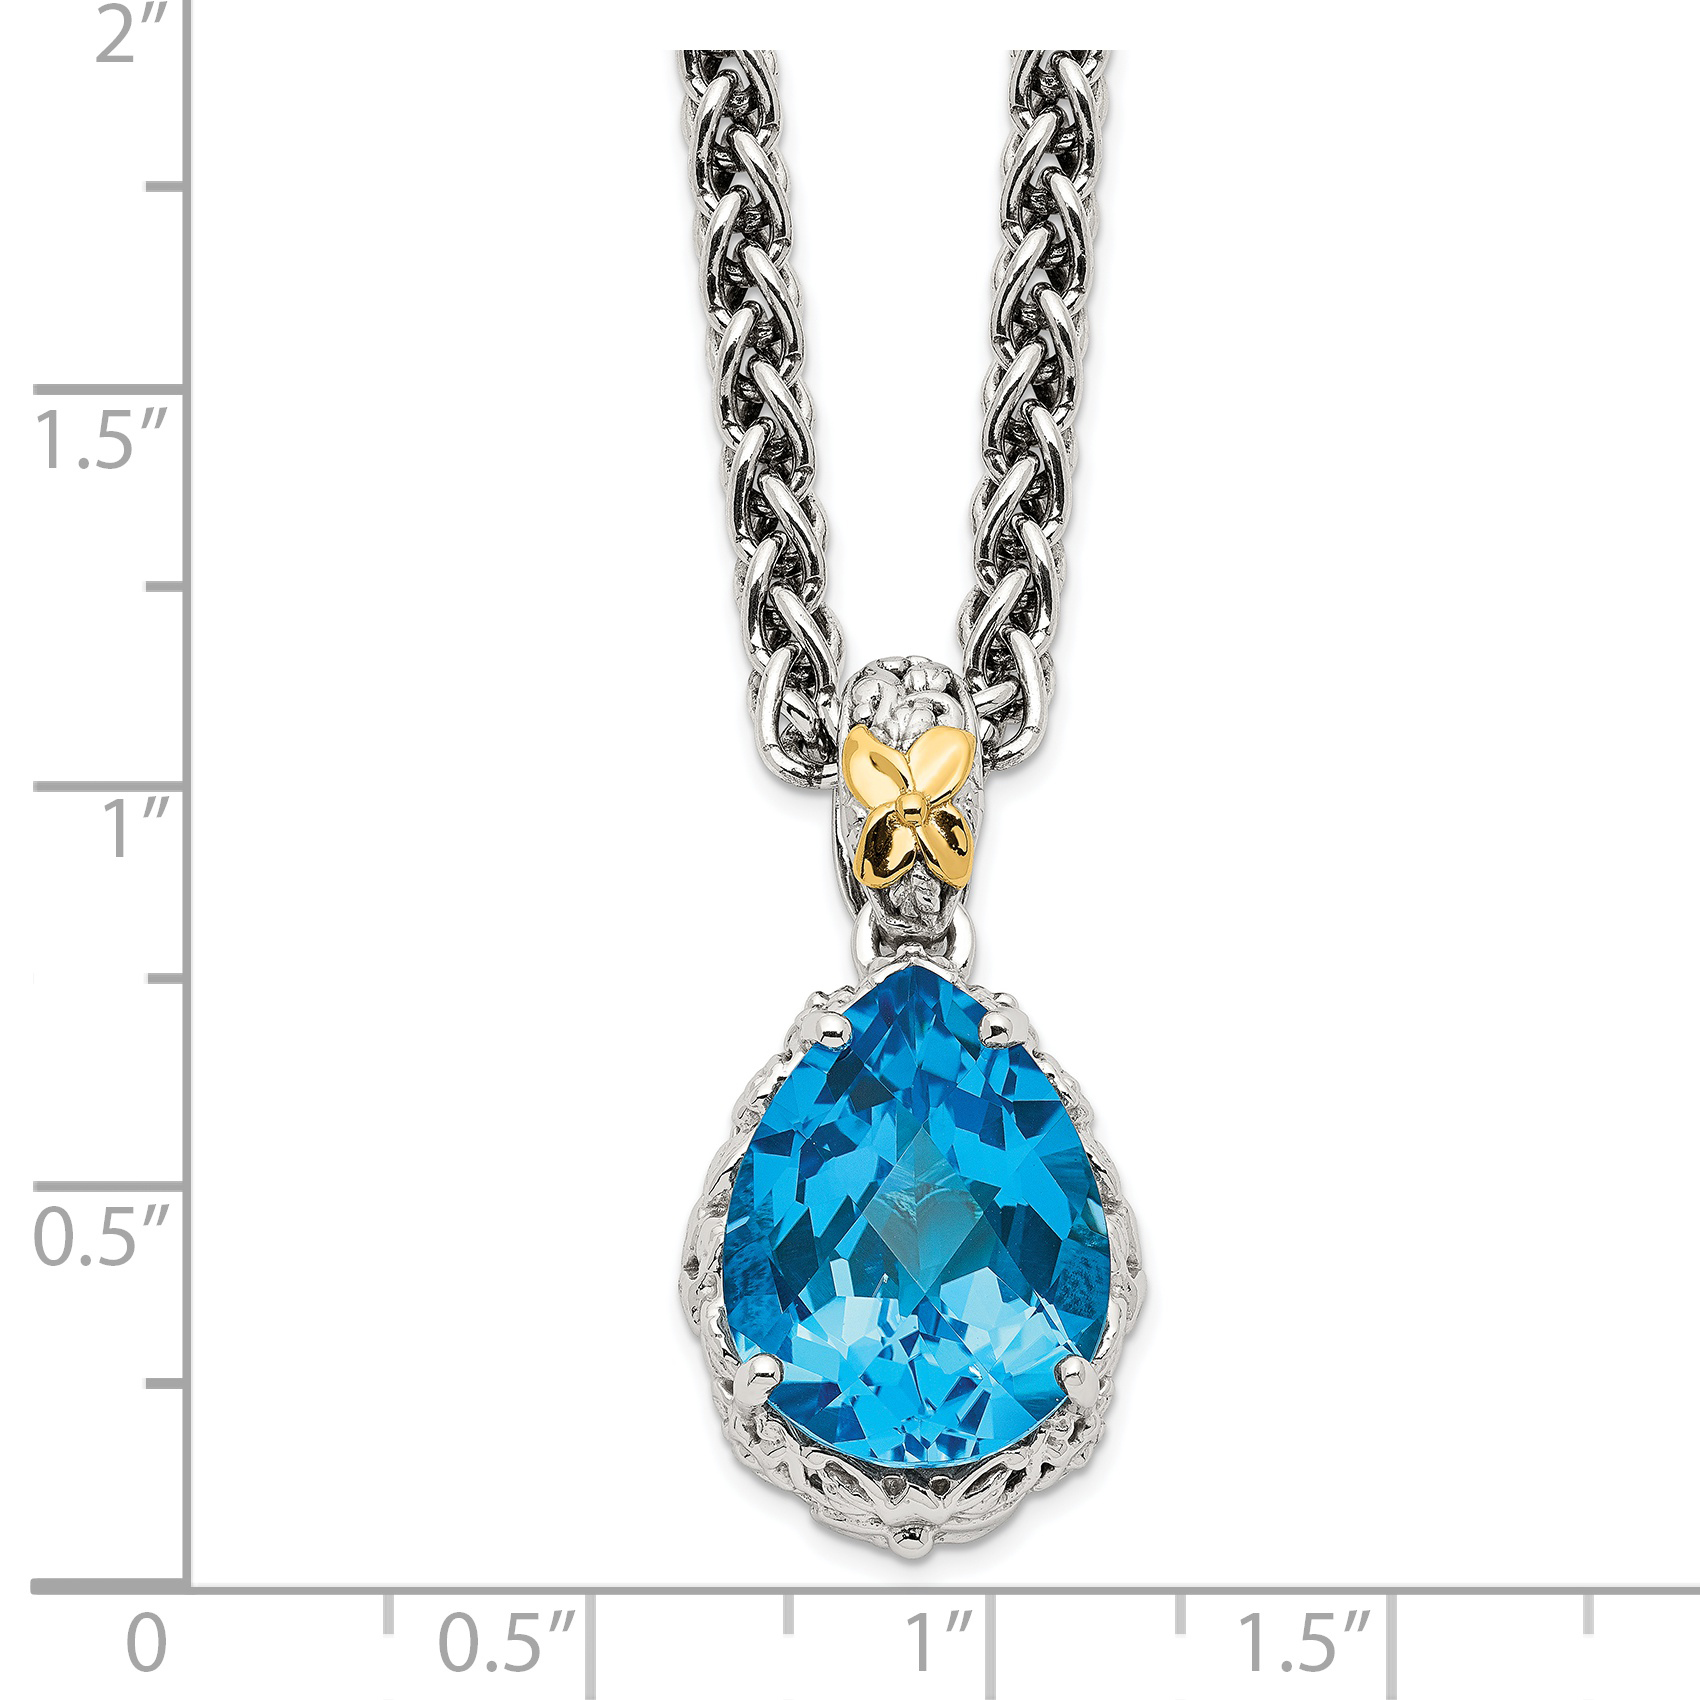 Jewelry Necklaces Gemstone Sterling Silver with 14k Lt Swiss Blue Topaz Necklace